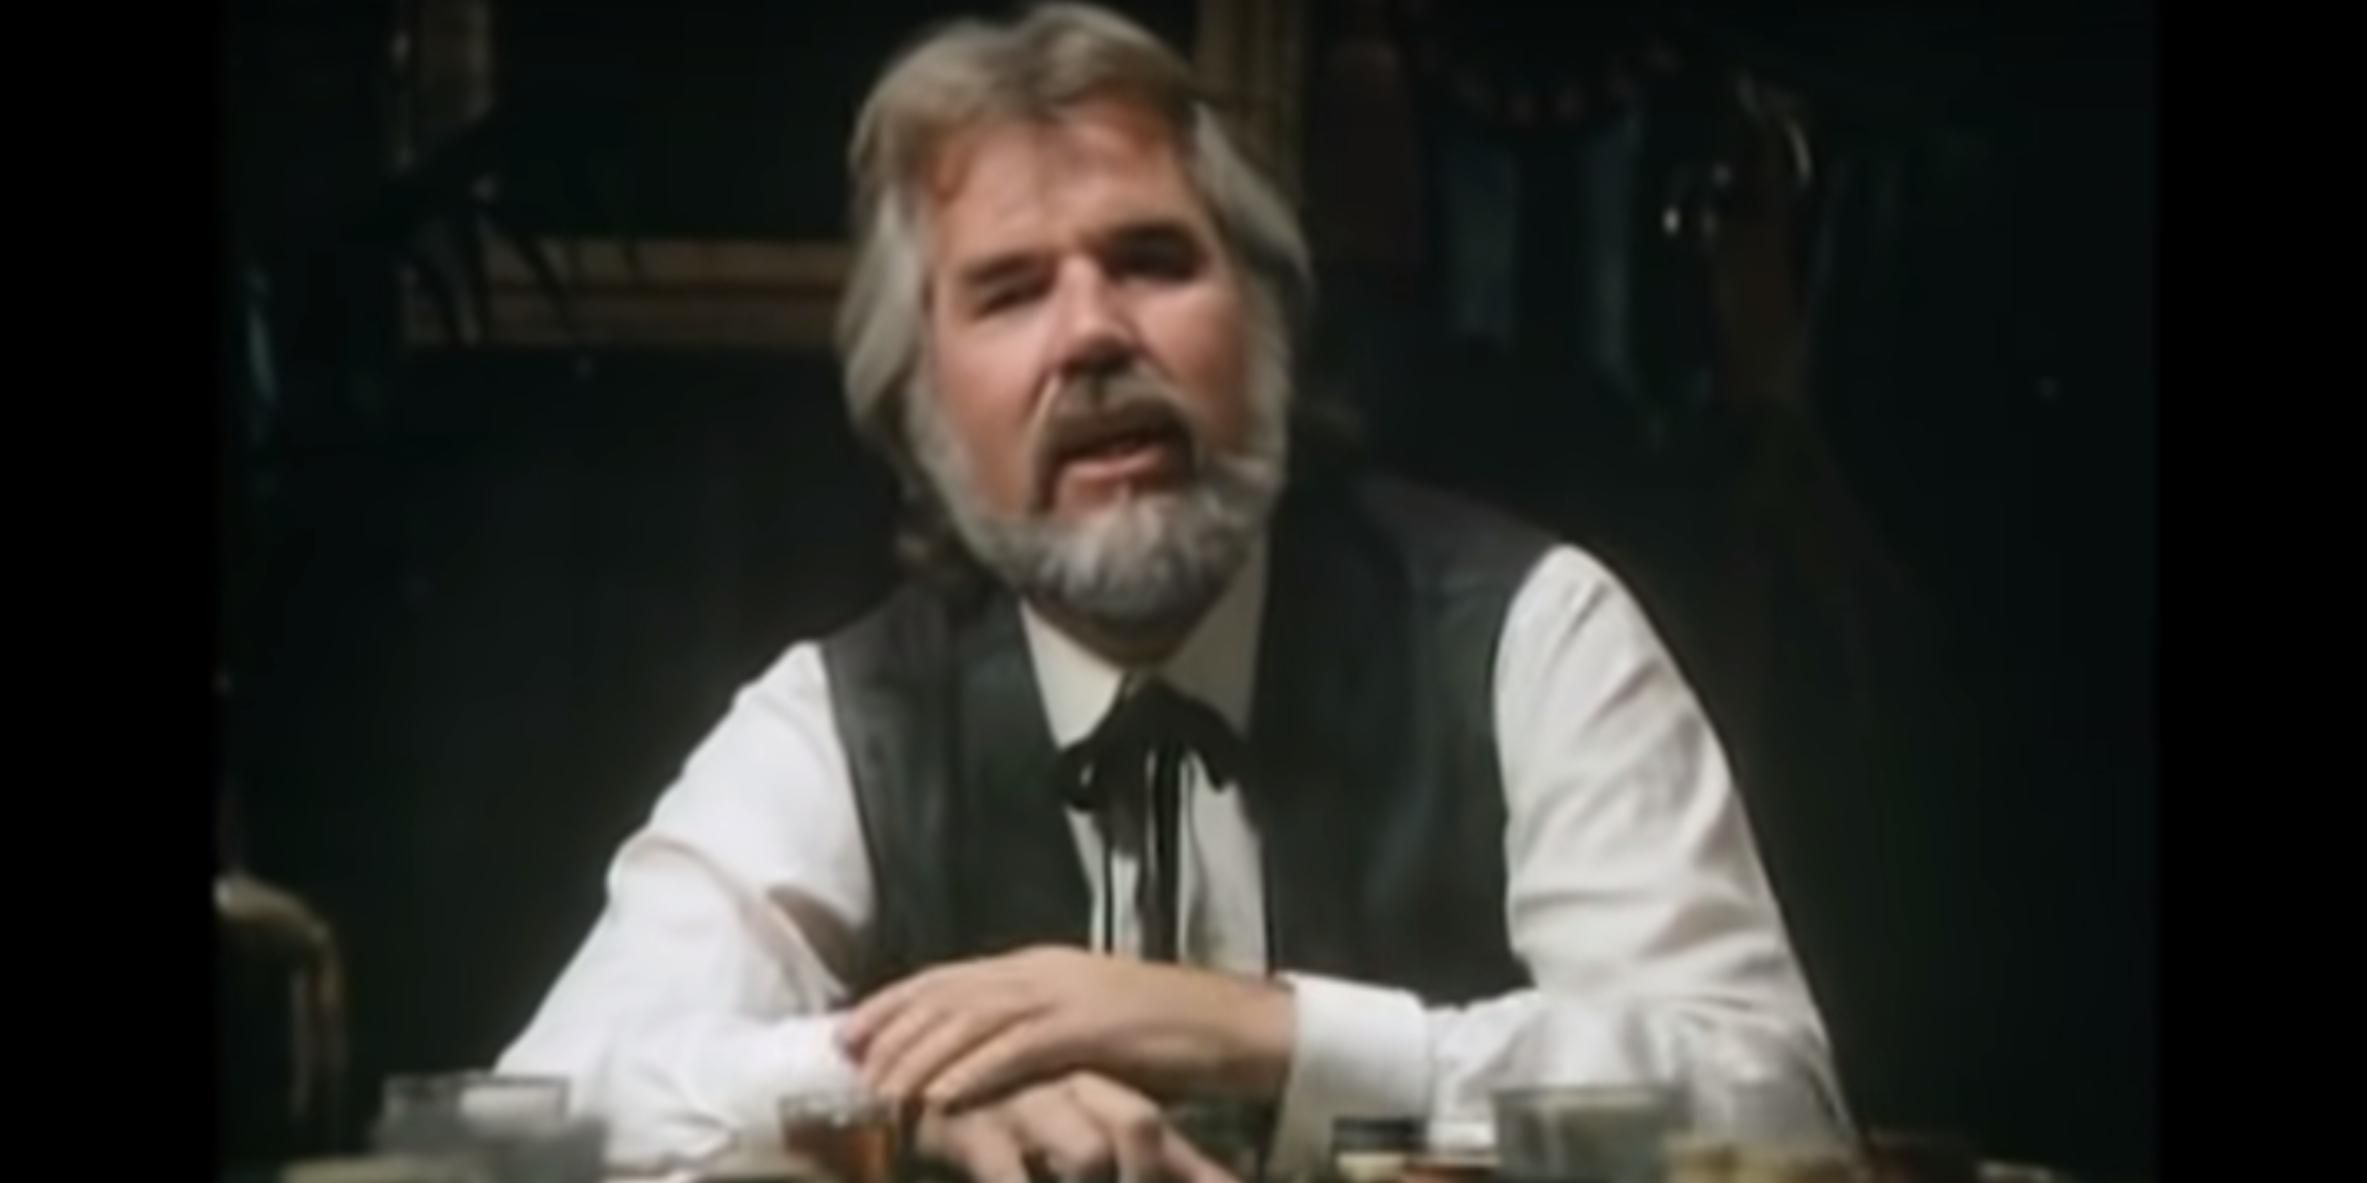 Singer Kenny Rogers, famed for The Gambler, dies at 81 ...